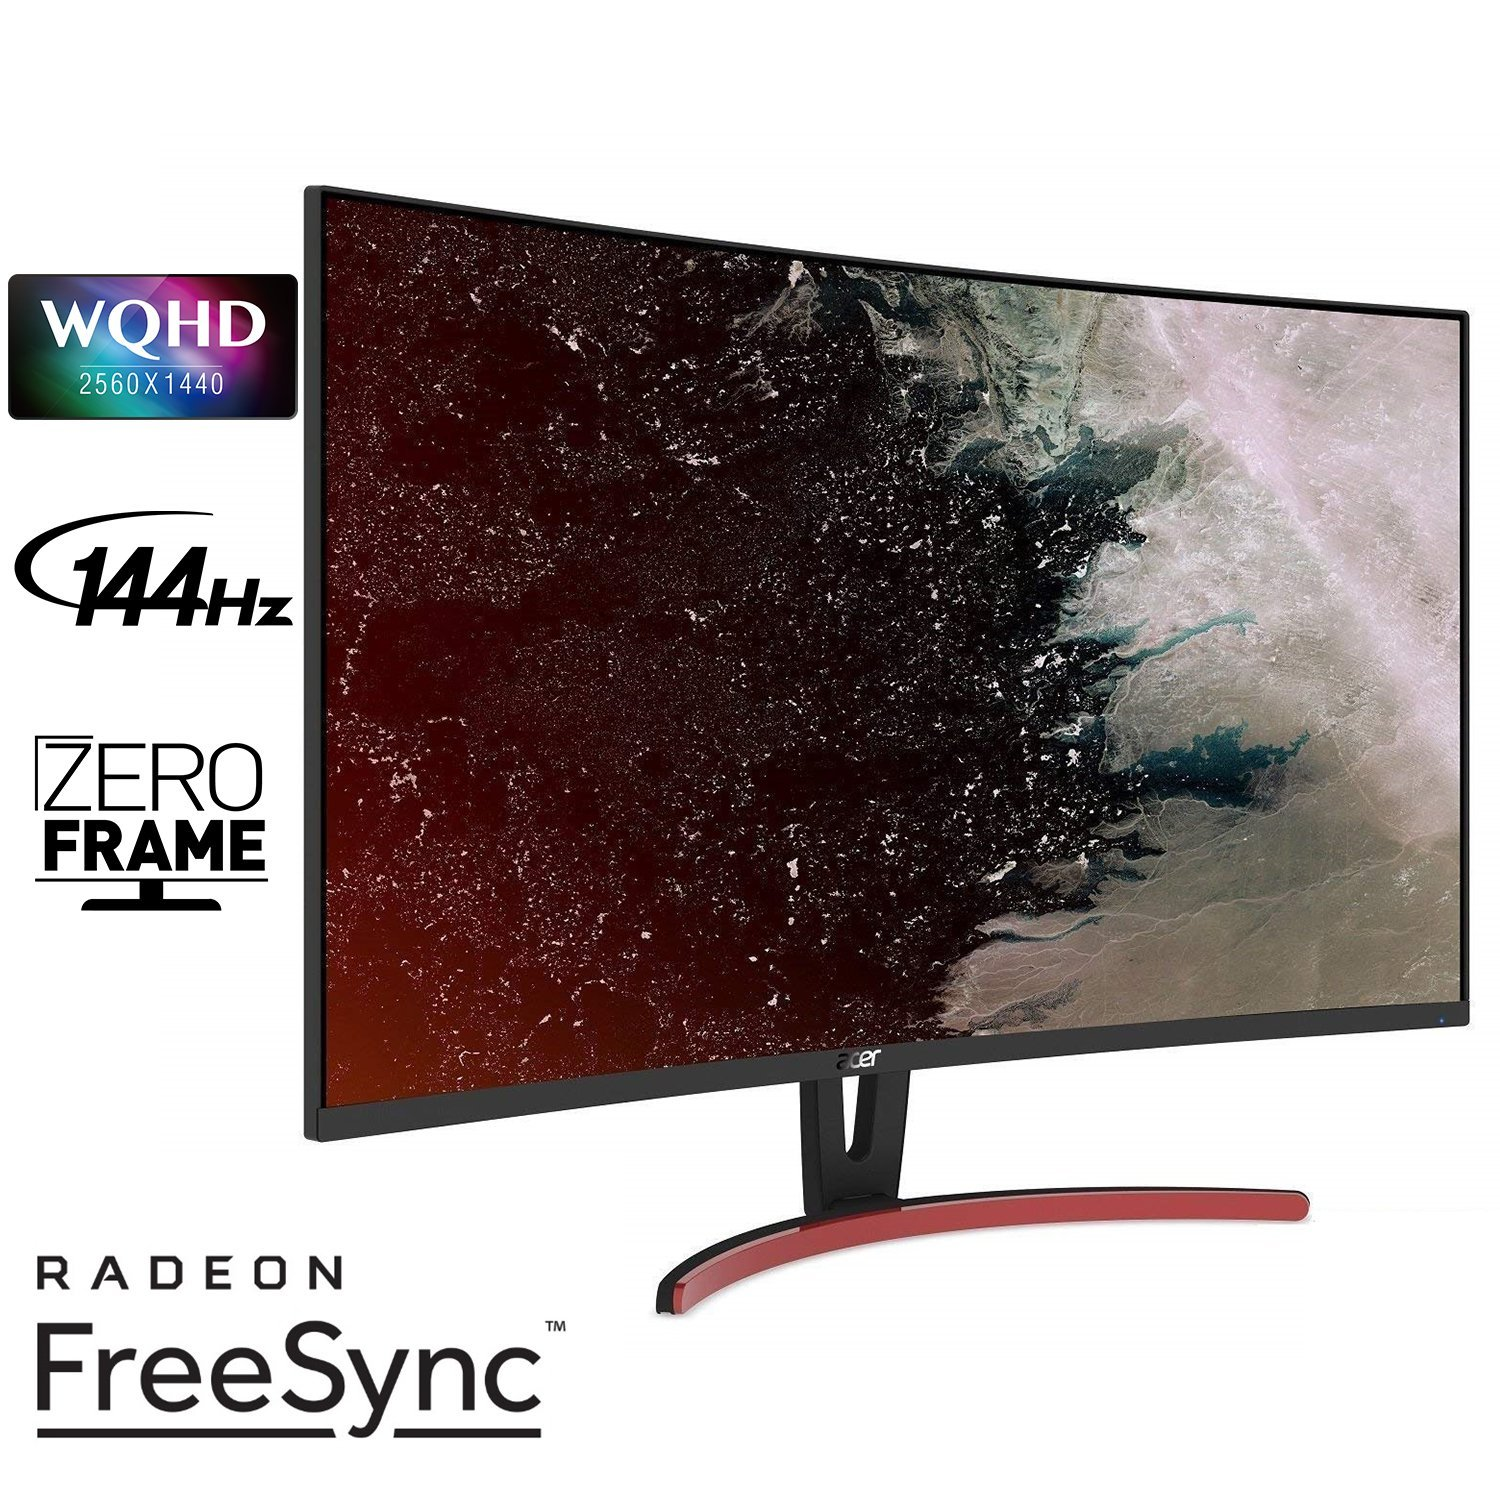 Acer ED323QUR Abidpx 31.5 WQHD 2560 x 1440 Curved 1800R VA Gaming Monitor with AMD Radeon FREESYNC Technology – 4ms 144Hz Refresh Rate Display Port, HDMI Port DVI Port